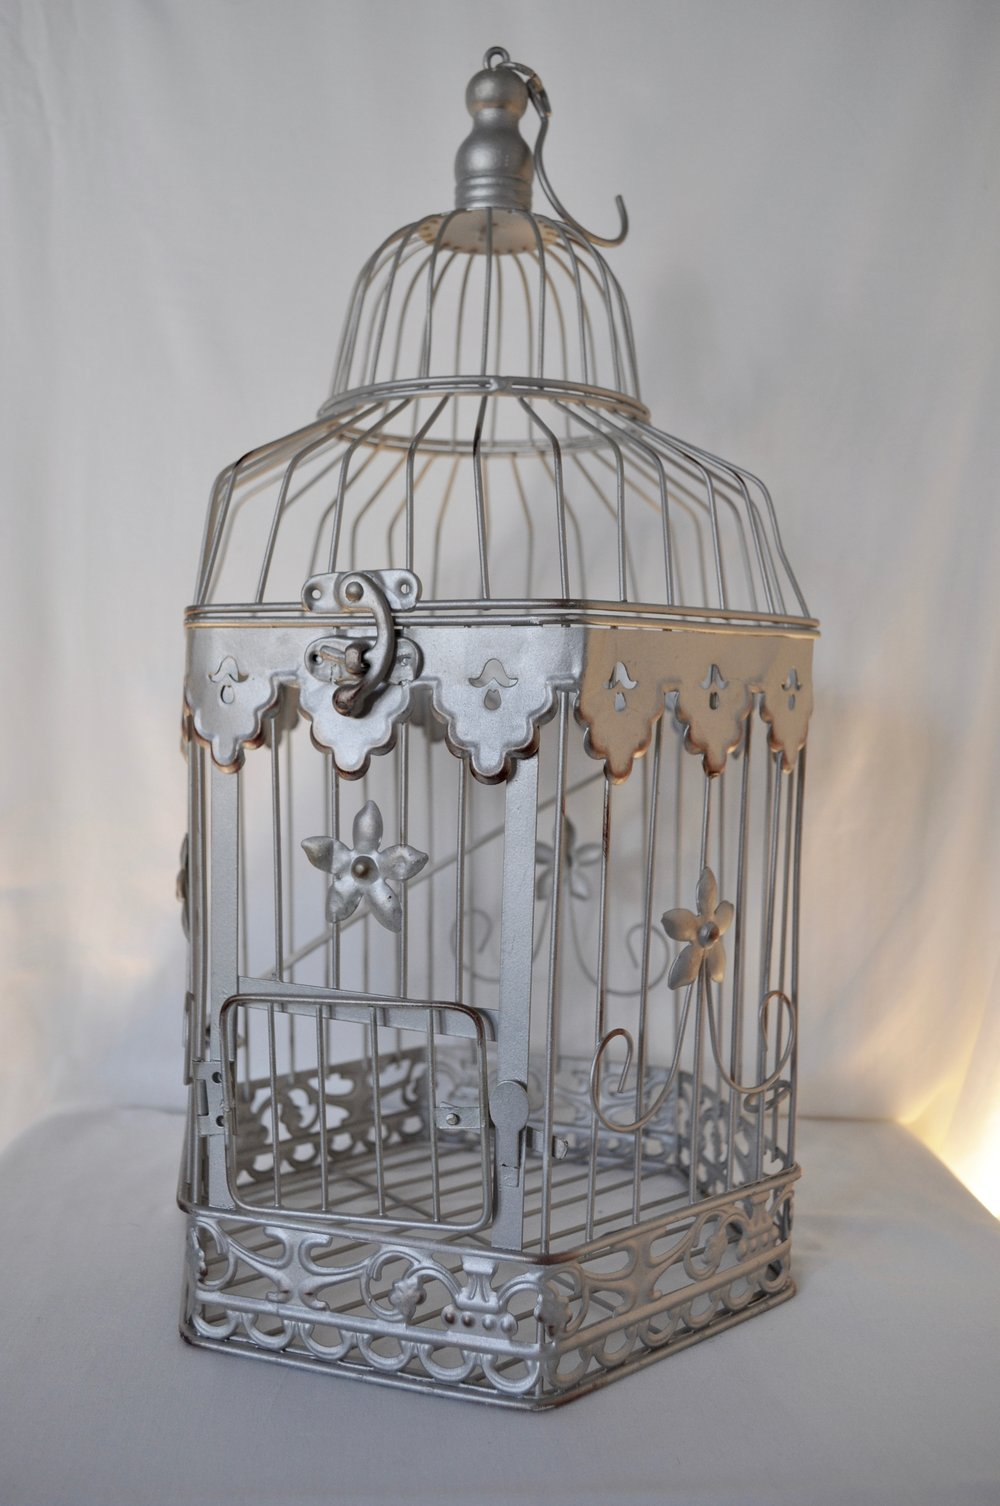 Bird Cage Card Holder - Qty: 1